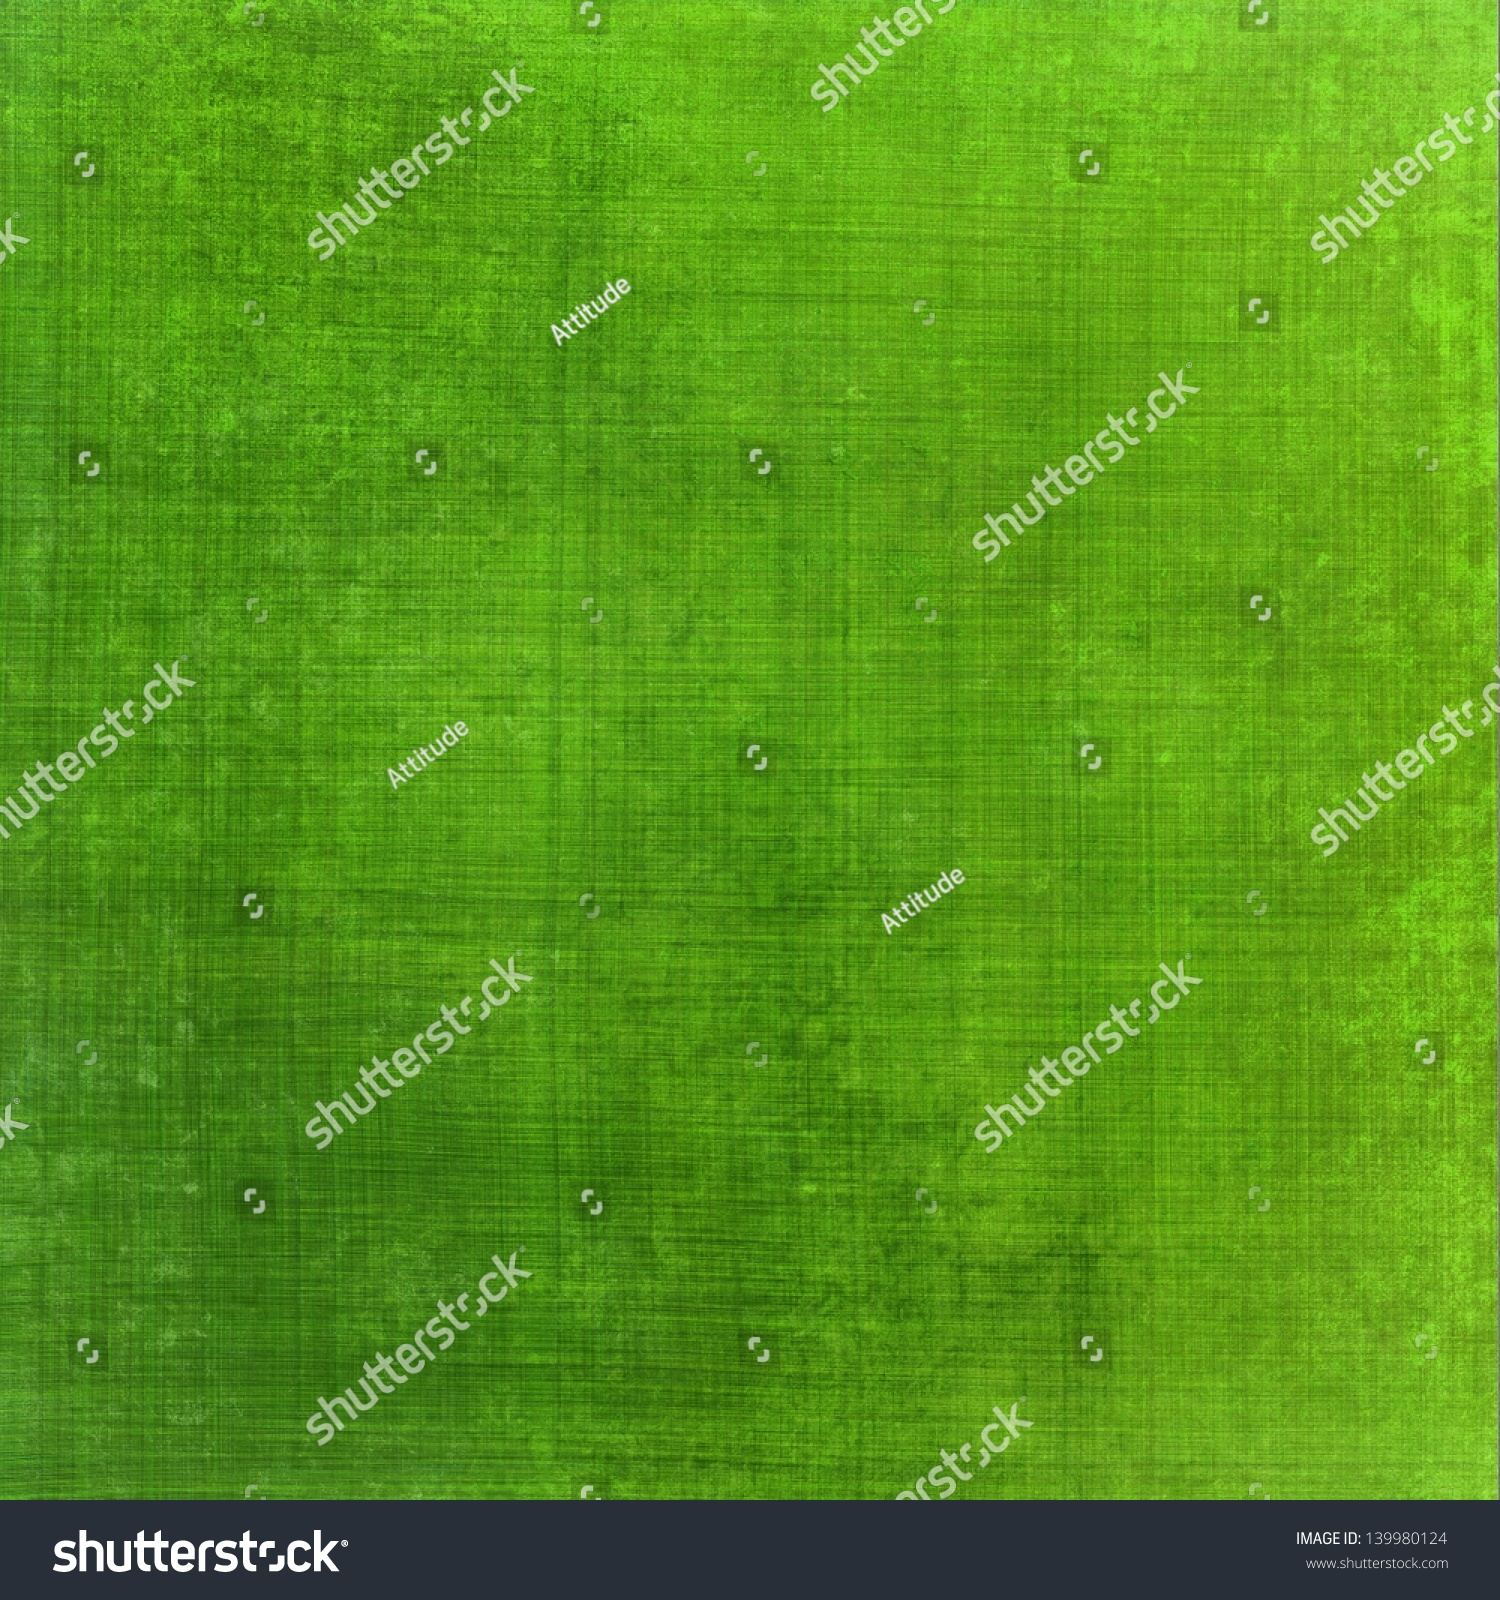 Web colors lime - Lime Green Background Christmas Color Vintage Grunge Background Texture Layout Web Template Background Design